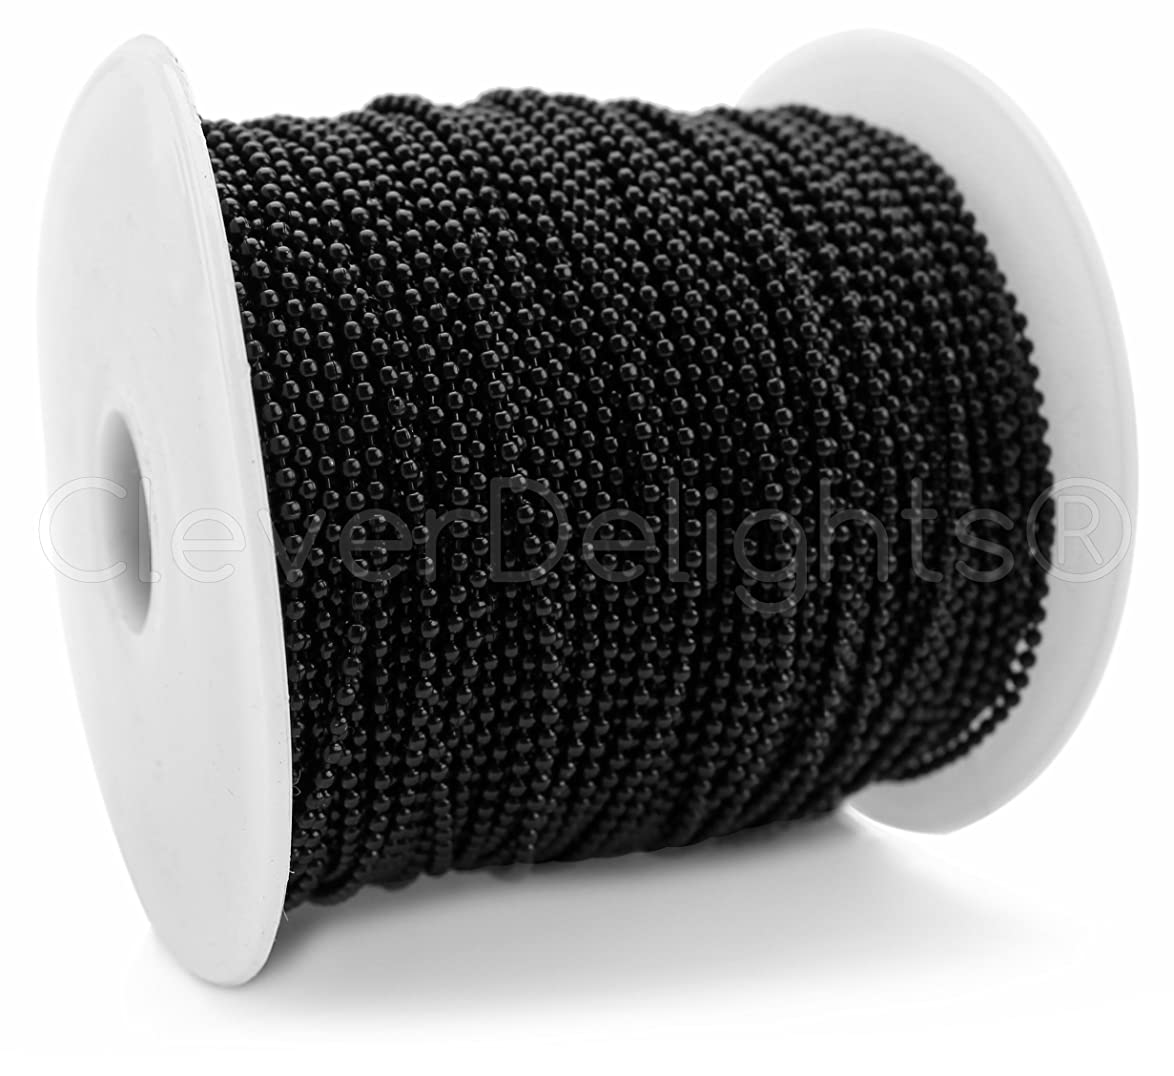 CleverDelights Ball Chain Spool - 330 Feet - 2.0mm Ball - Dark Black - 100 Meters - Bulk wsijmlrsqdjplkj7